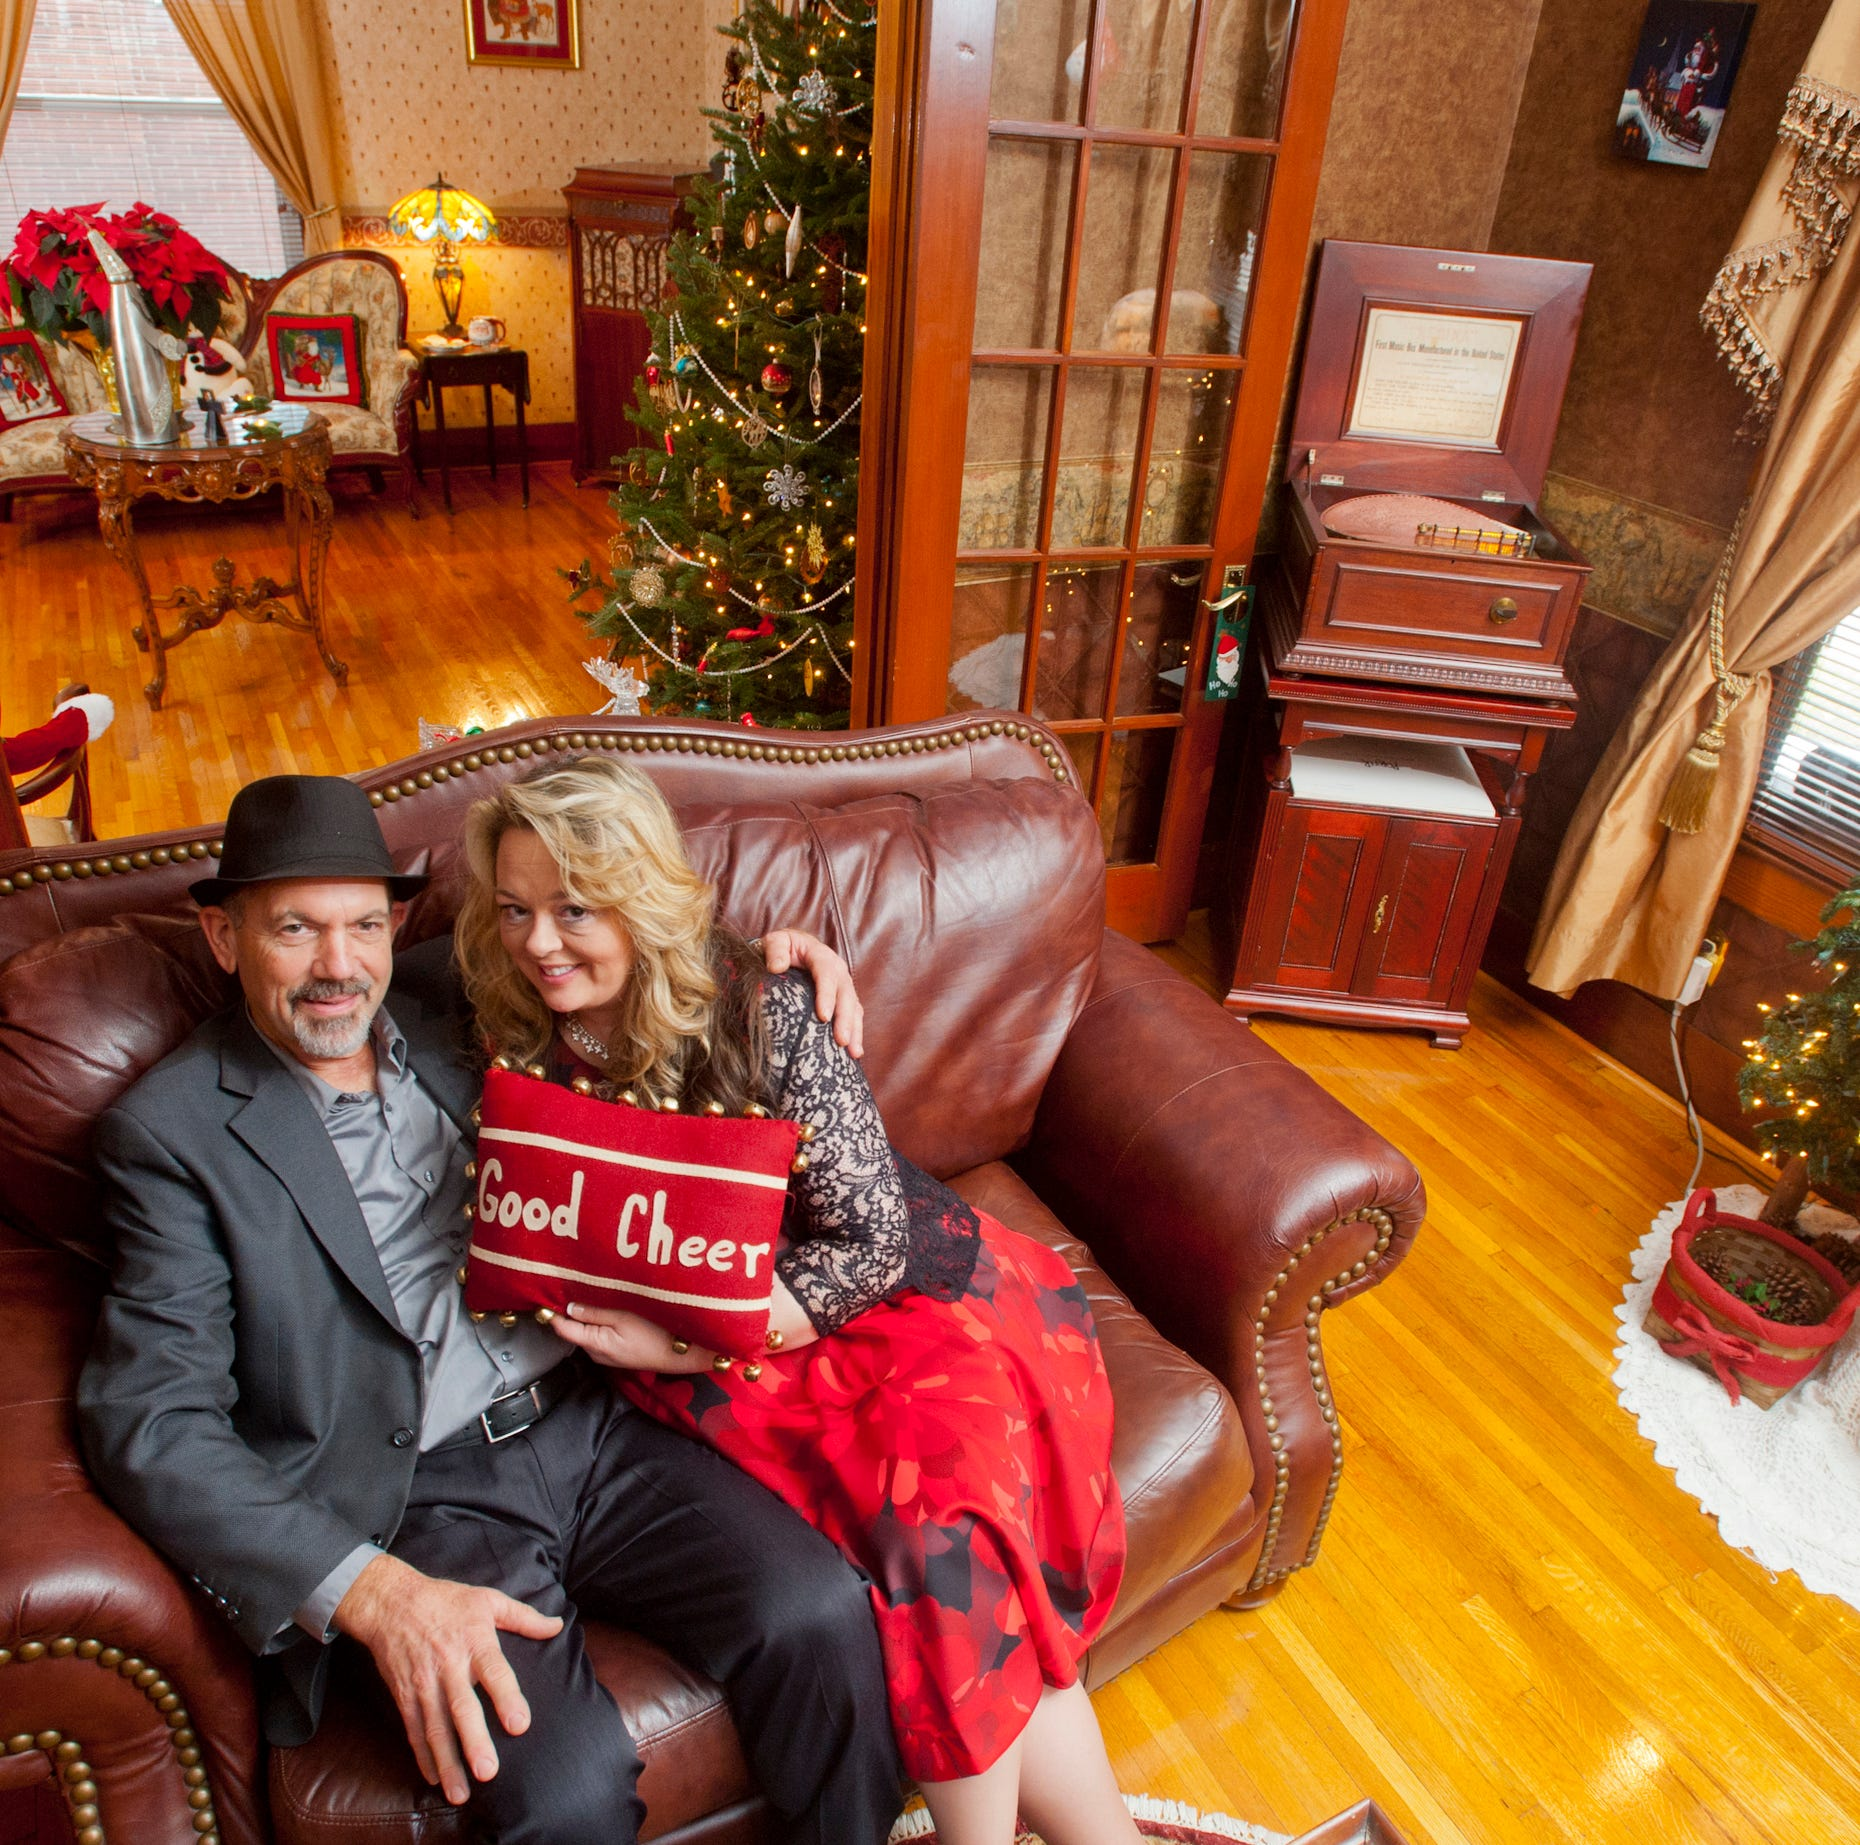 Portland bungalow-style home boasts 'old Christmas movie' holiday vibe